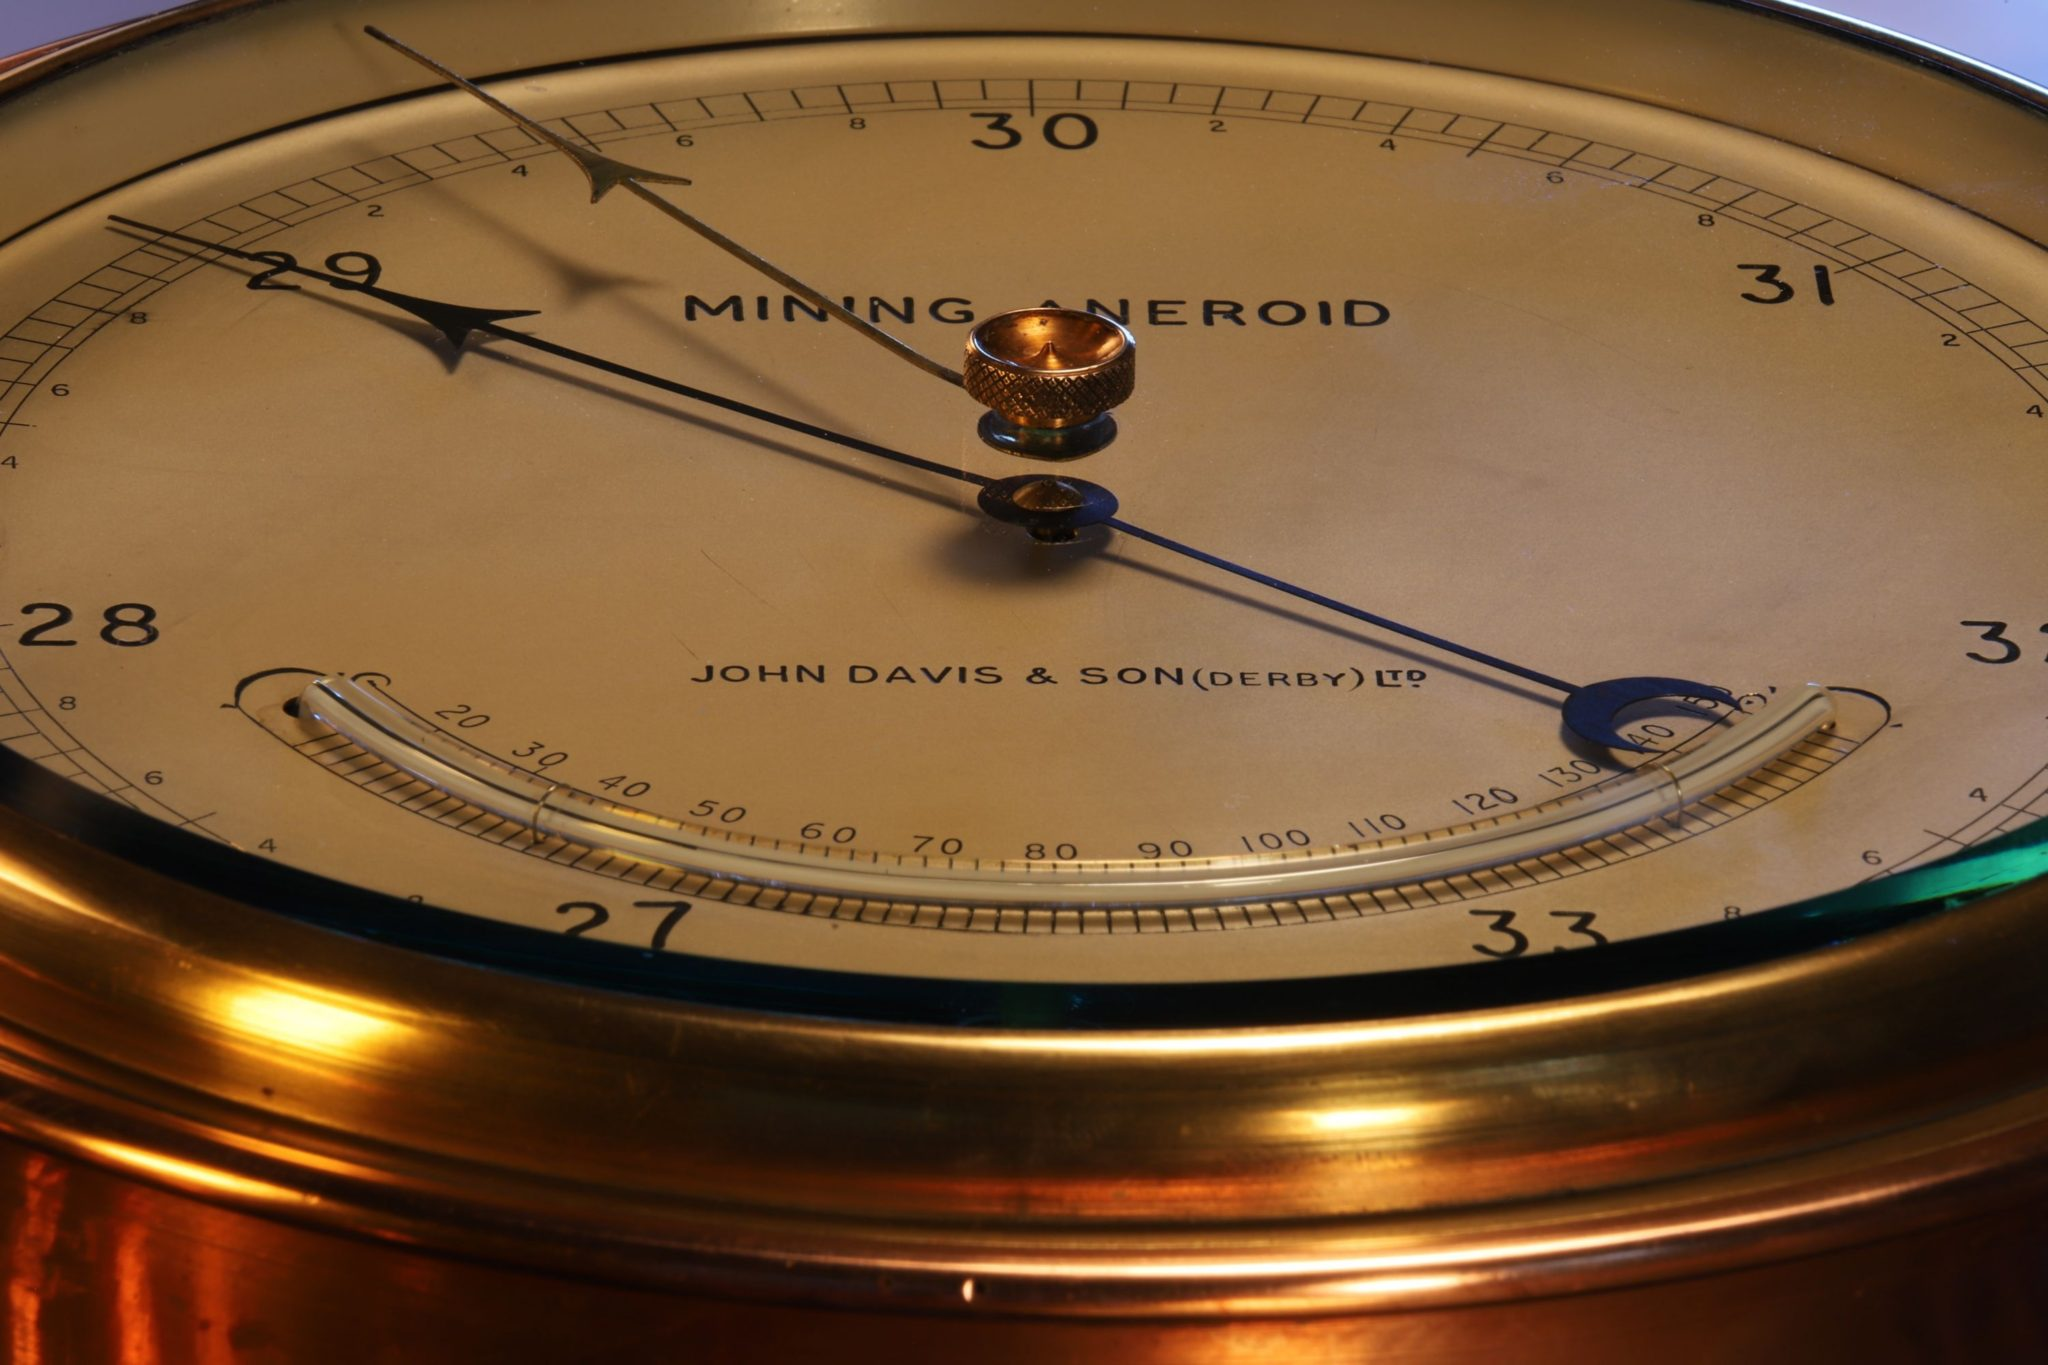 Image of Mining Aneroid Barometer by John Davis & Son (Derby) Ltd c1920s